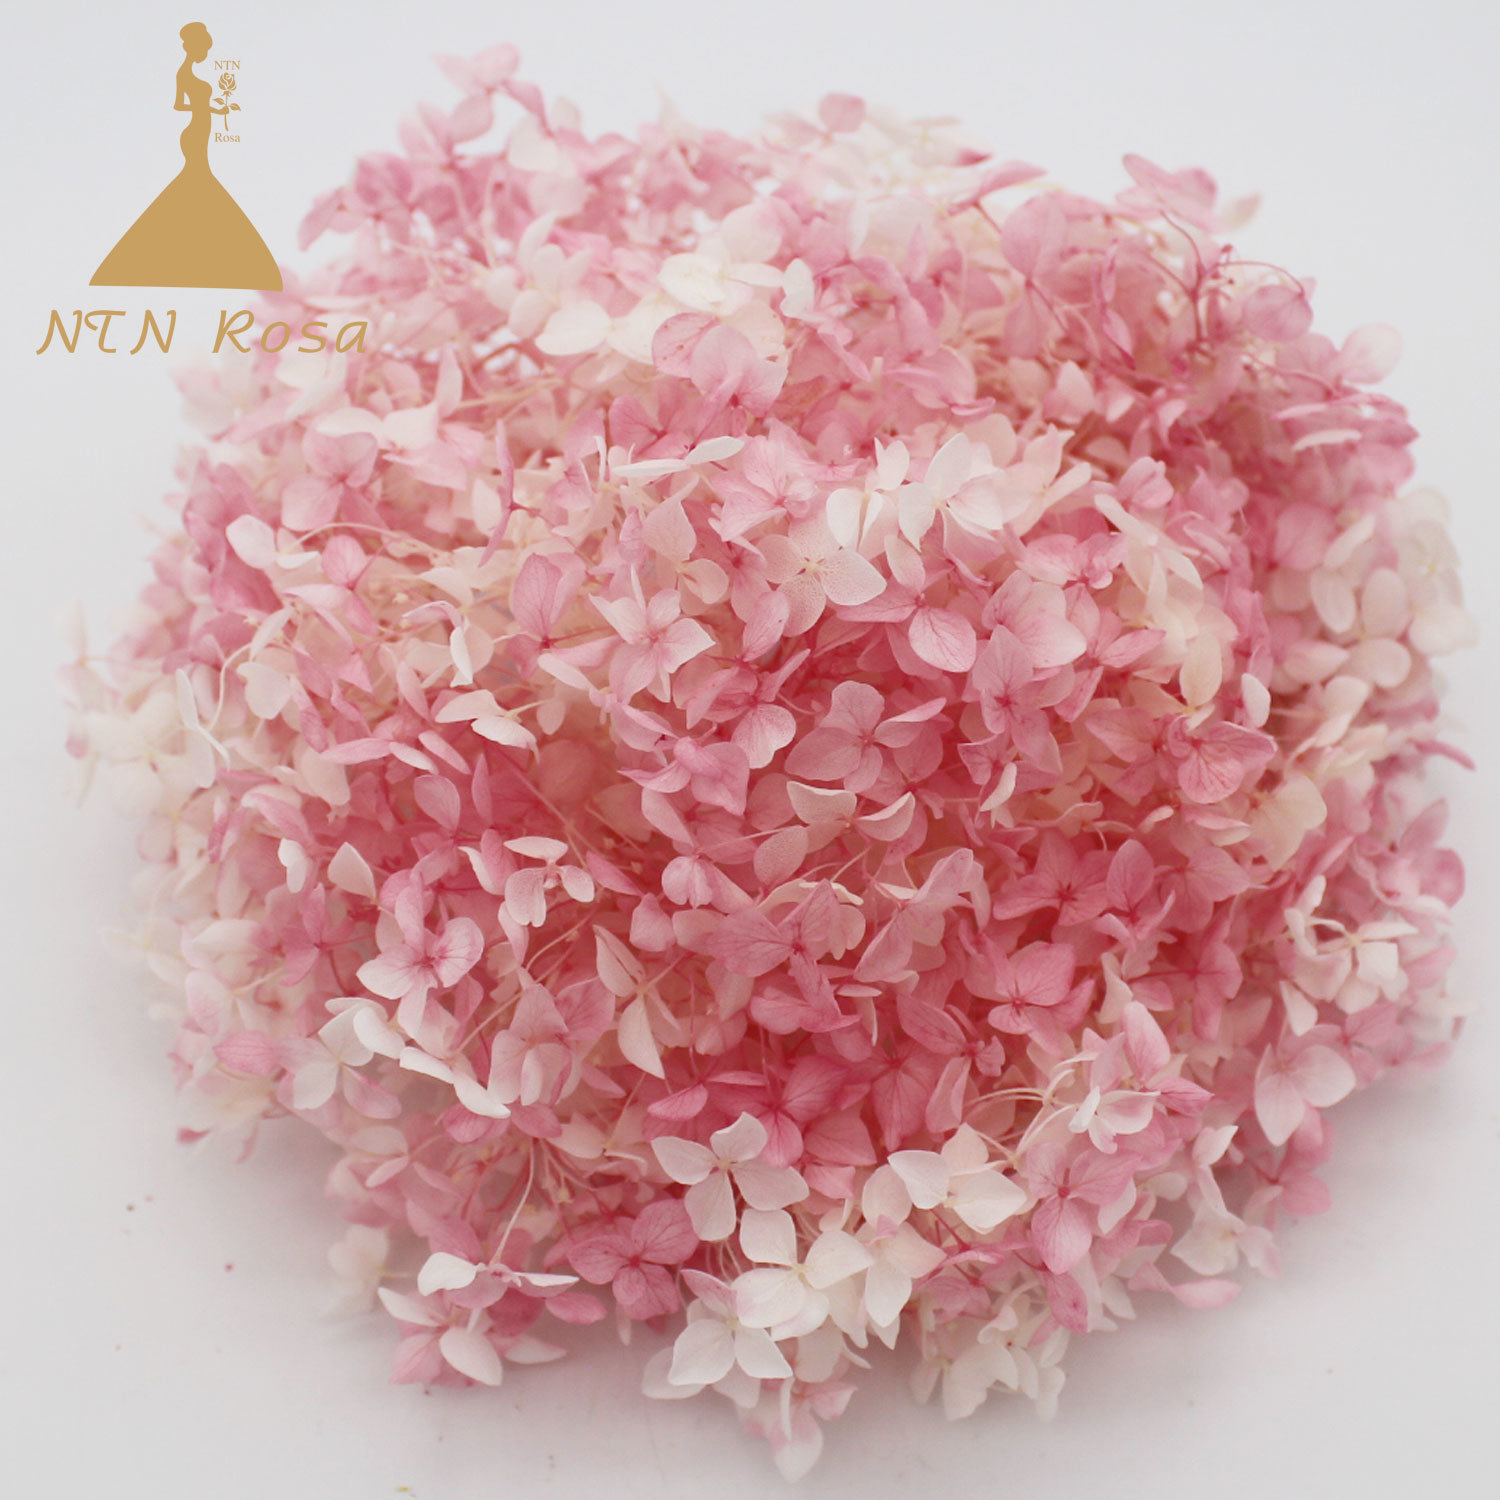 China Wholesale Hydrangea Flowers at Best Price with High Quality ...